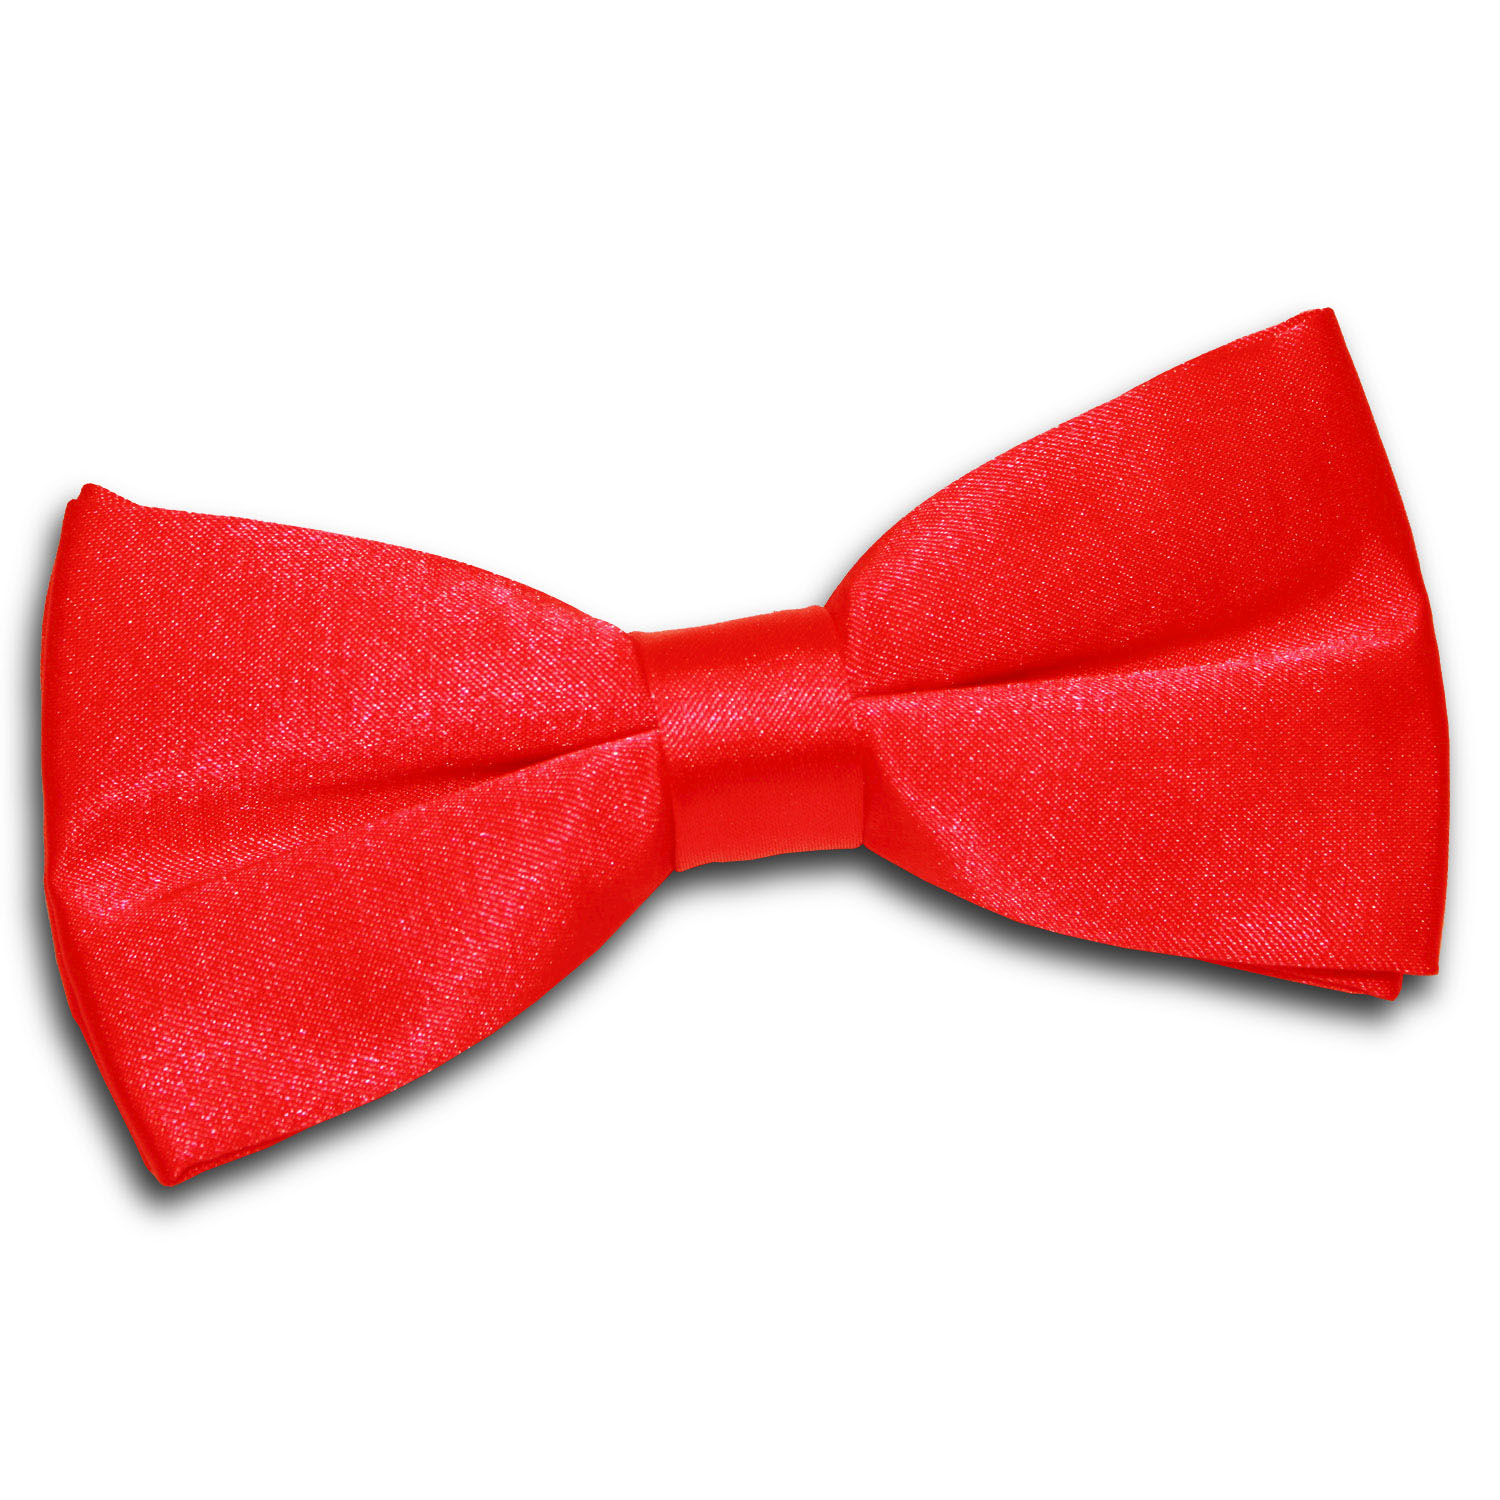 Esquire Red Satin Pre-Tied Bow Tie is rated out of 5 by 7. Rated 5 out of 5 by The Los from Simply stylish The Bow Tie is just simply yet gives a look of elegance! Formal or Casual is a good appearance for this Bow Tie! Date published: /5(7).